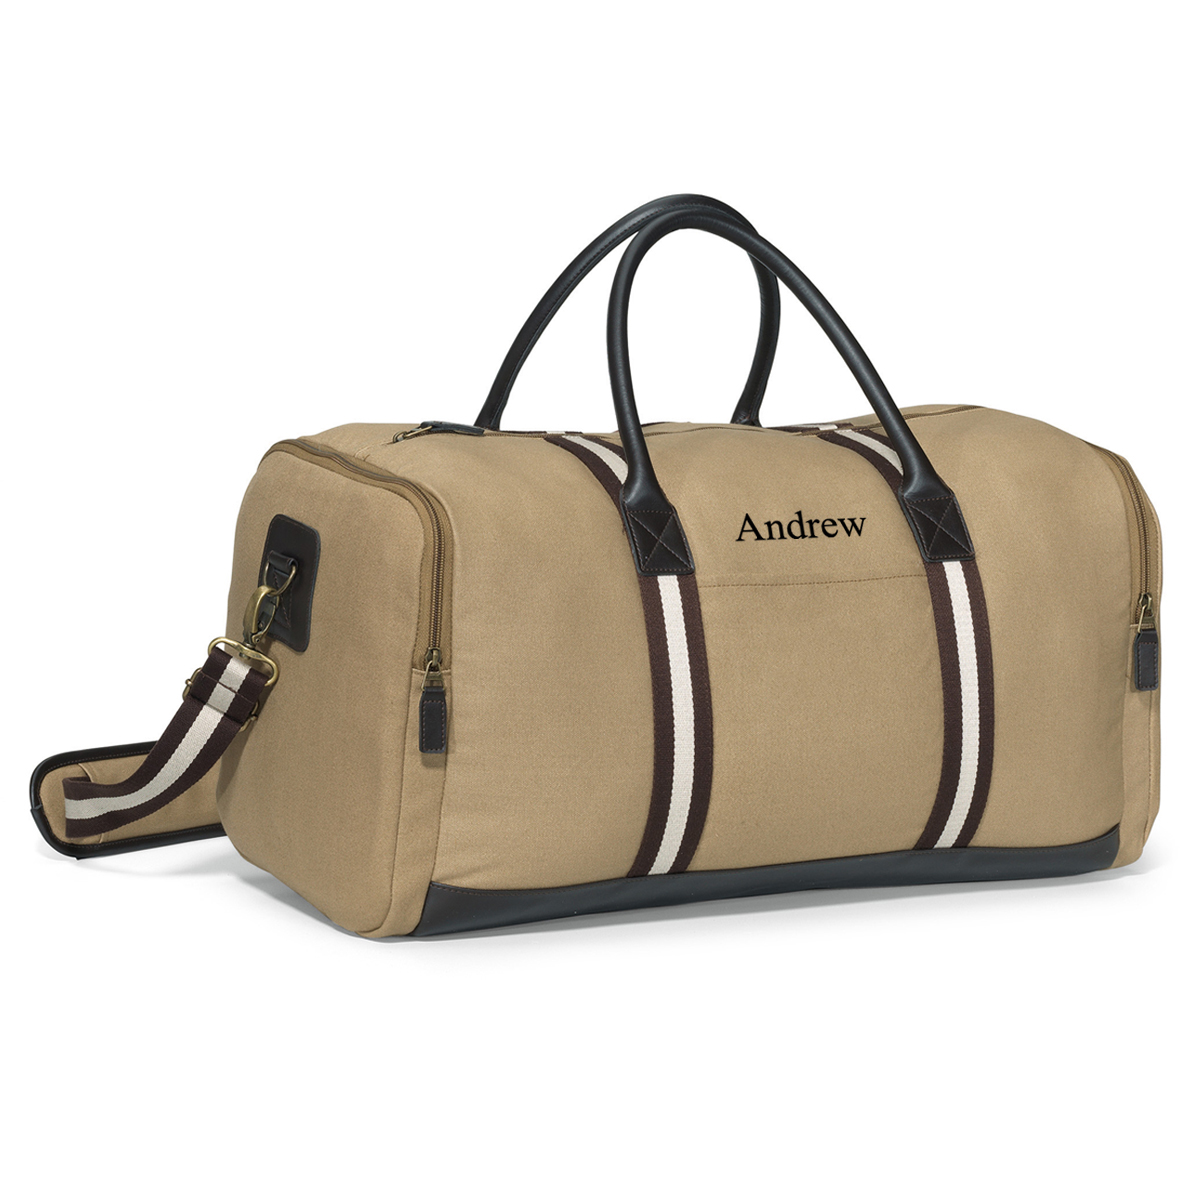 Personalized Heritage Supply Duffel Bag with Antique Hardware